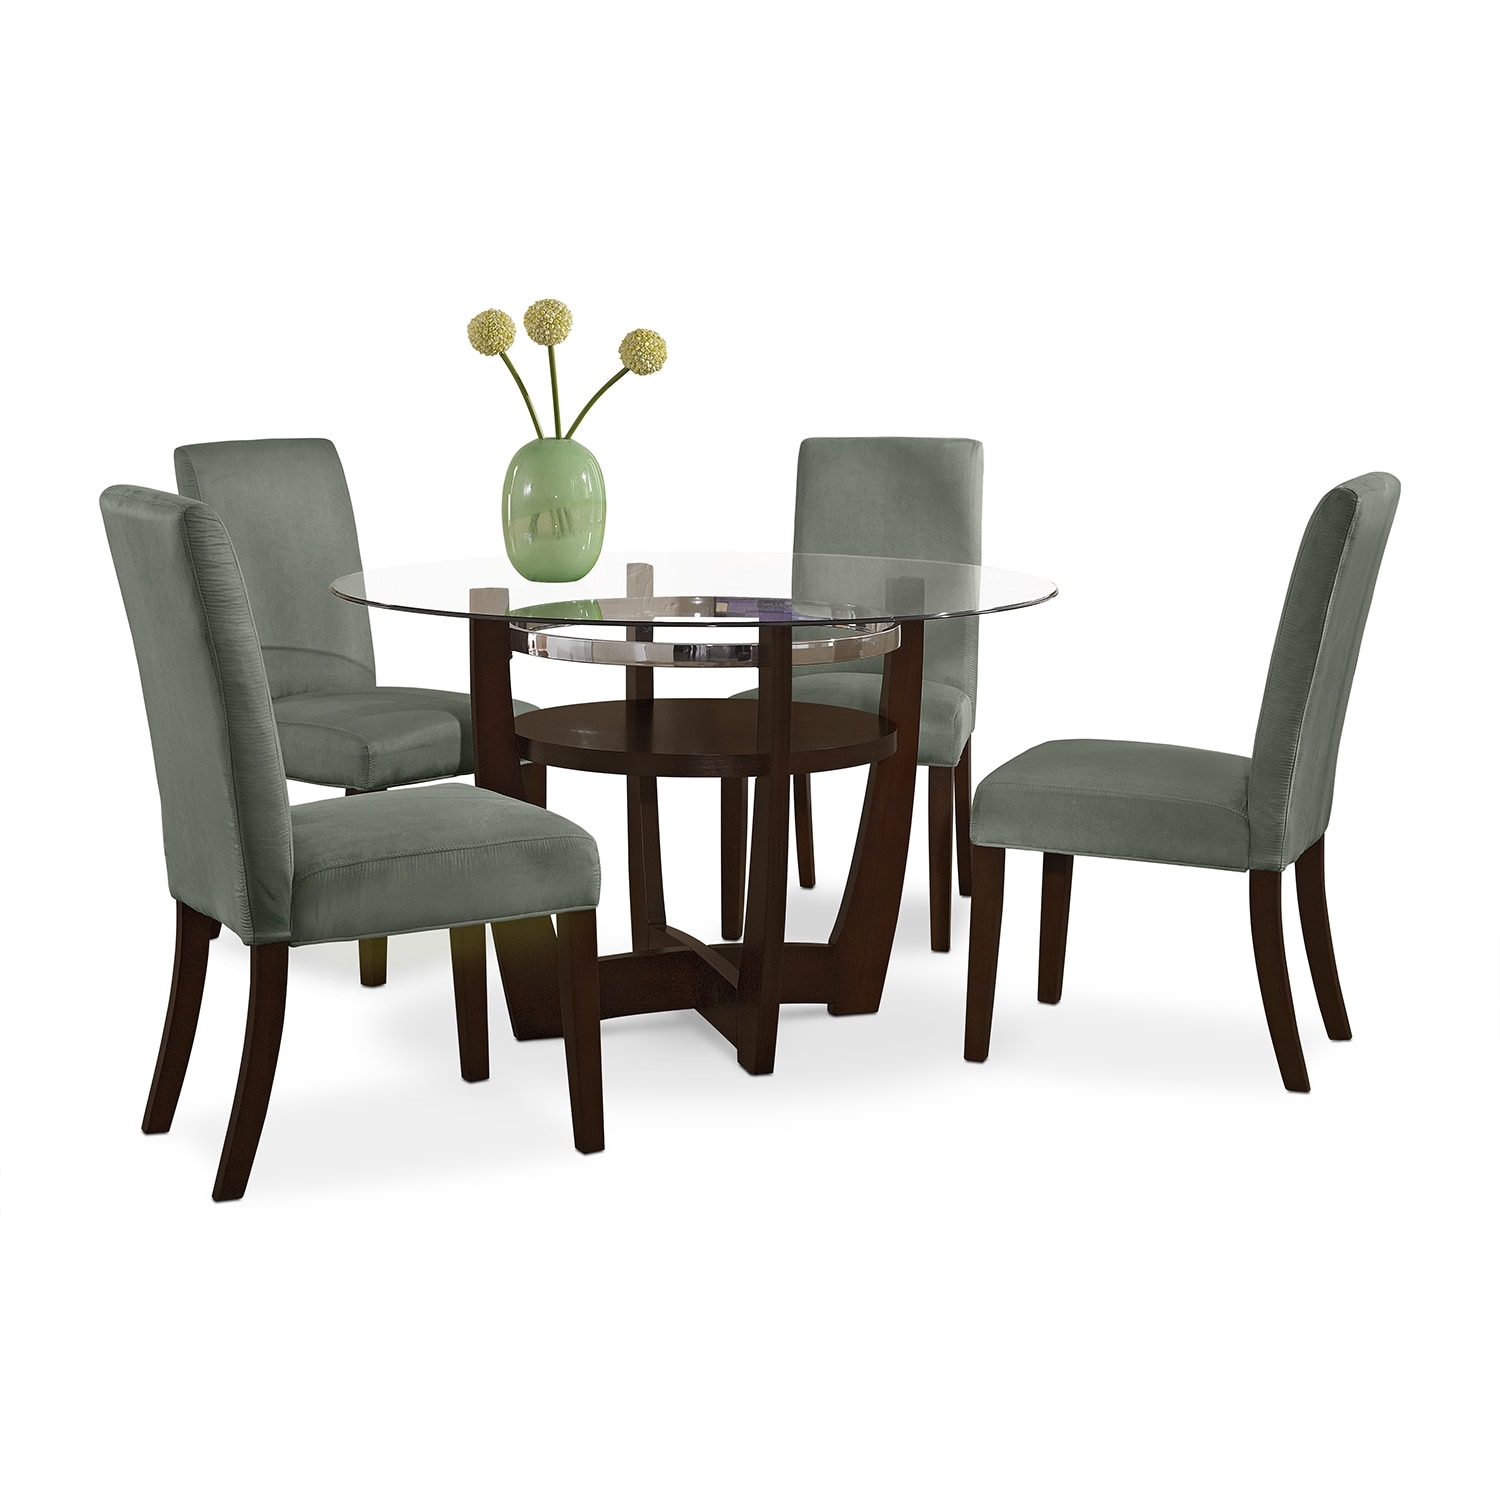 Dining Room Furniture   Alcove Dinette With 4 Side Chairs   Sage